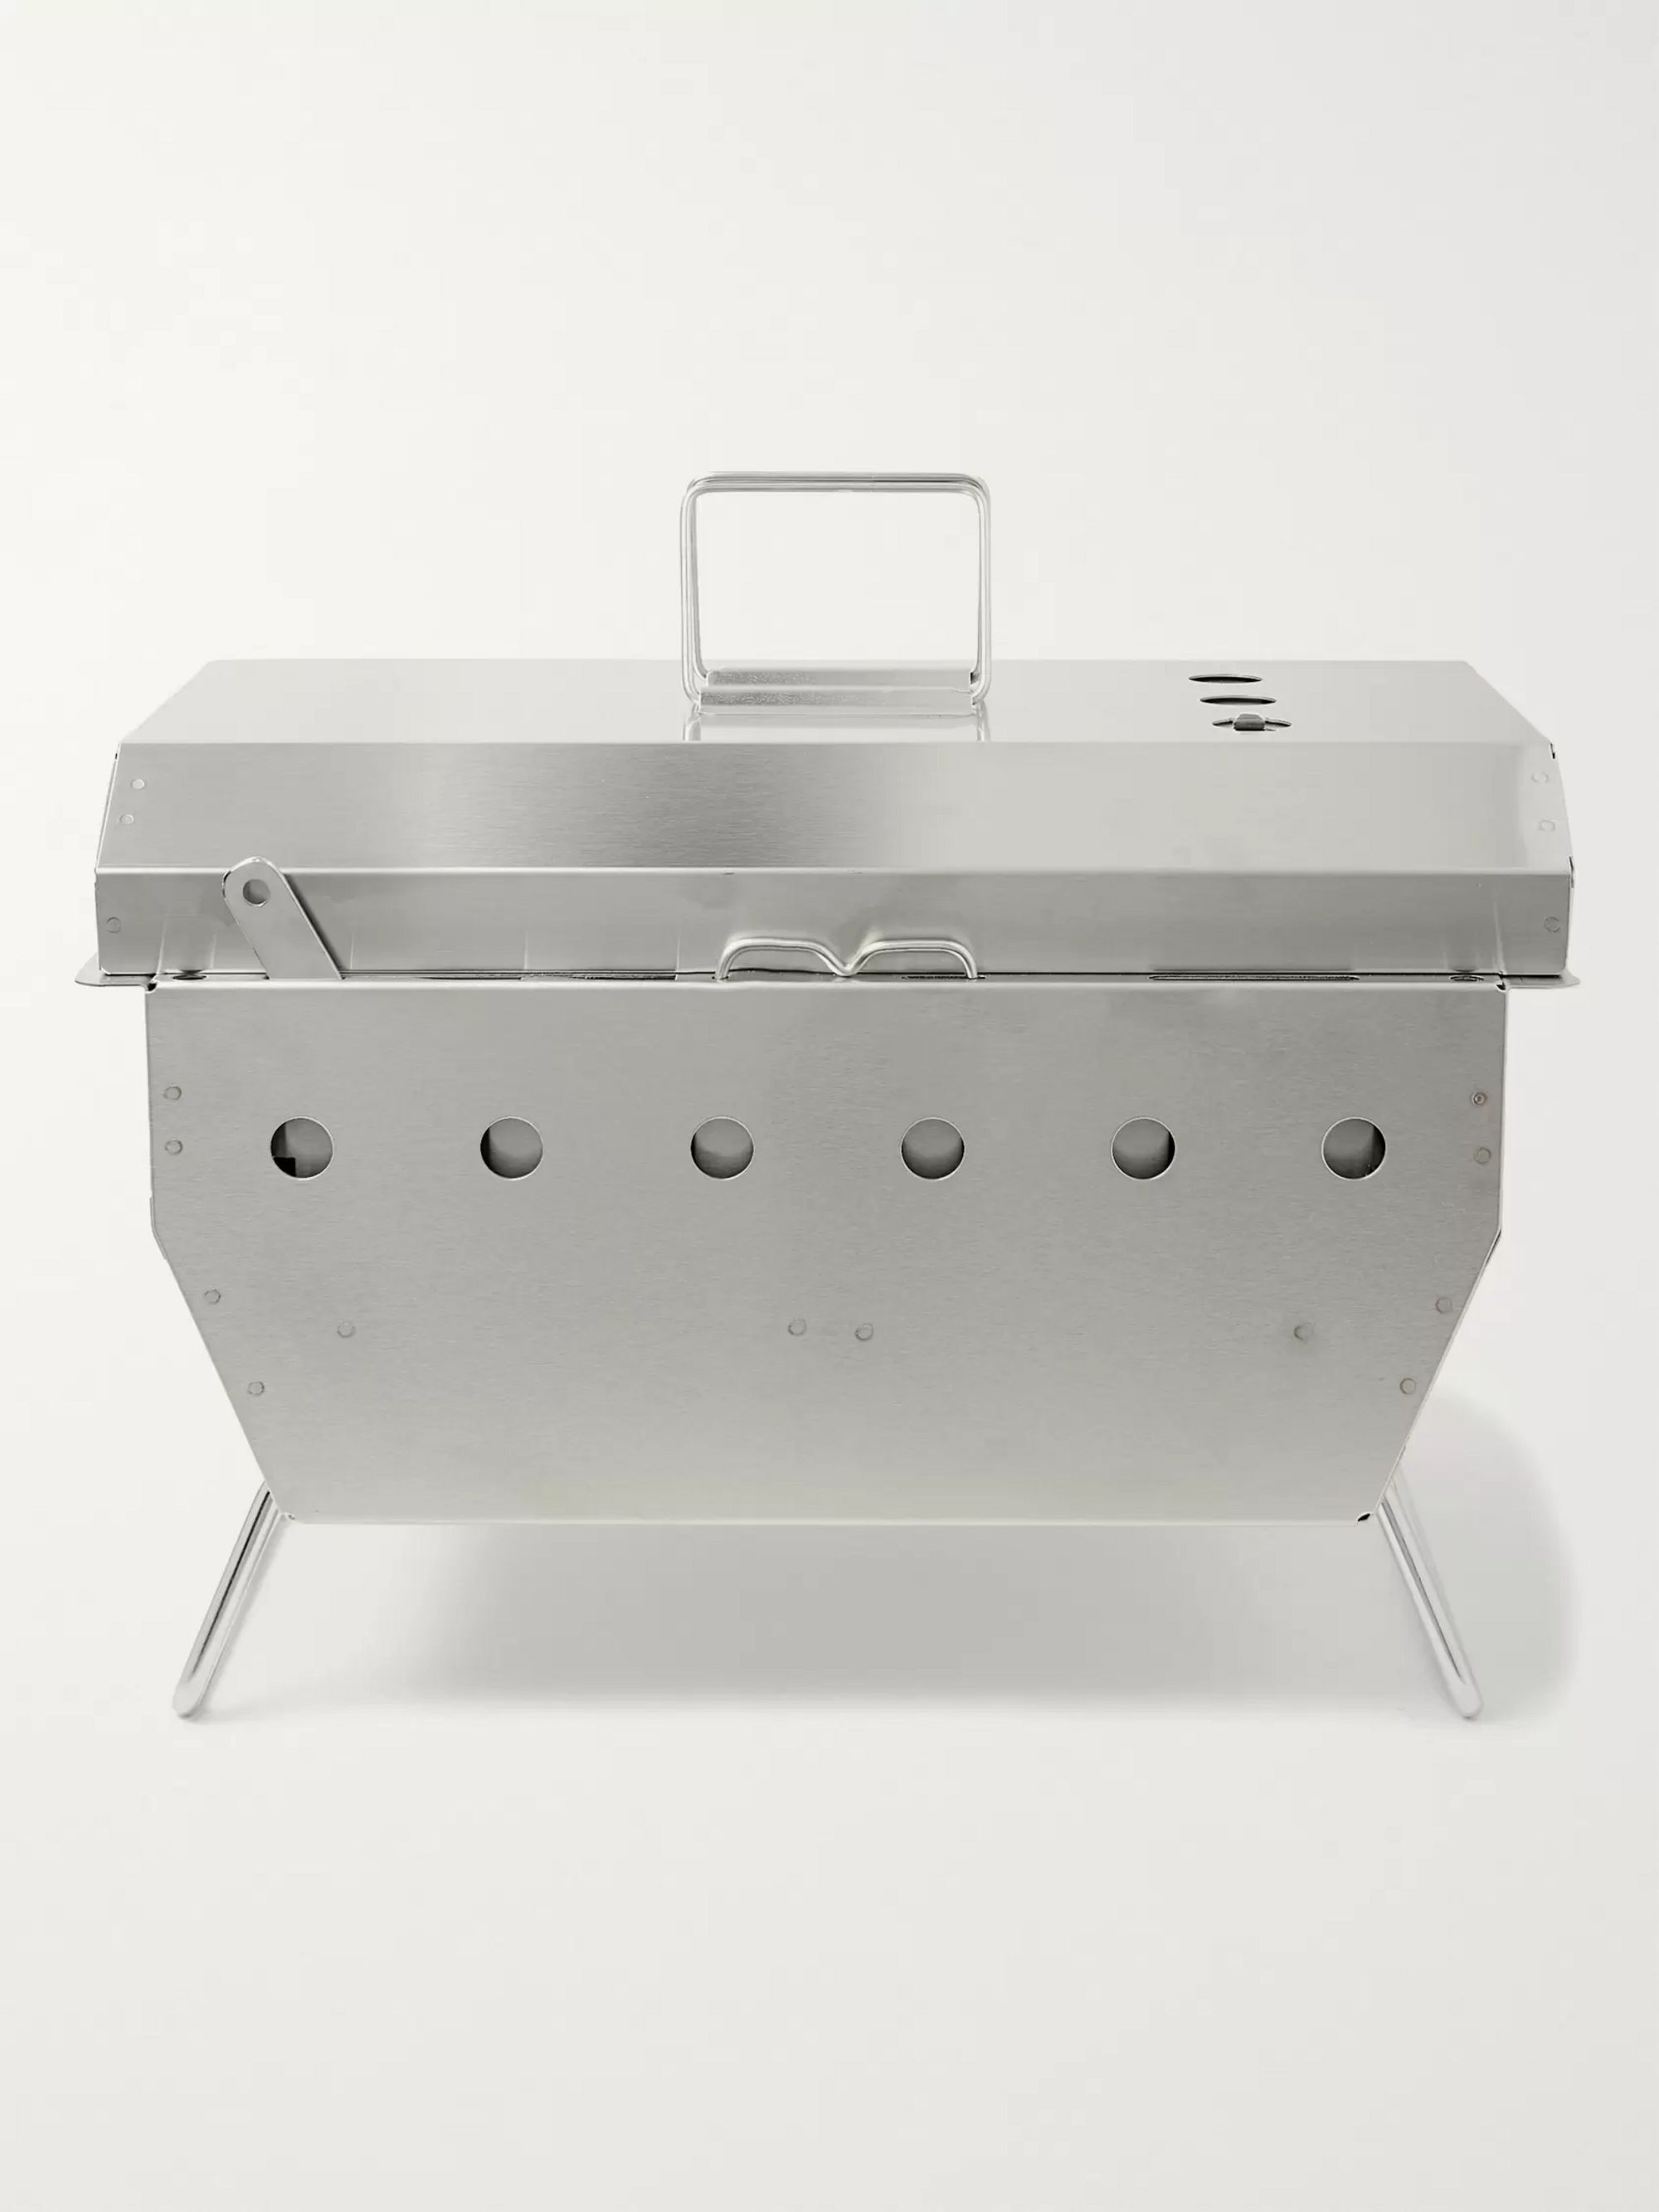 Snow Peak Stainless Steel BBQ Box